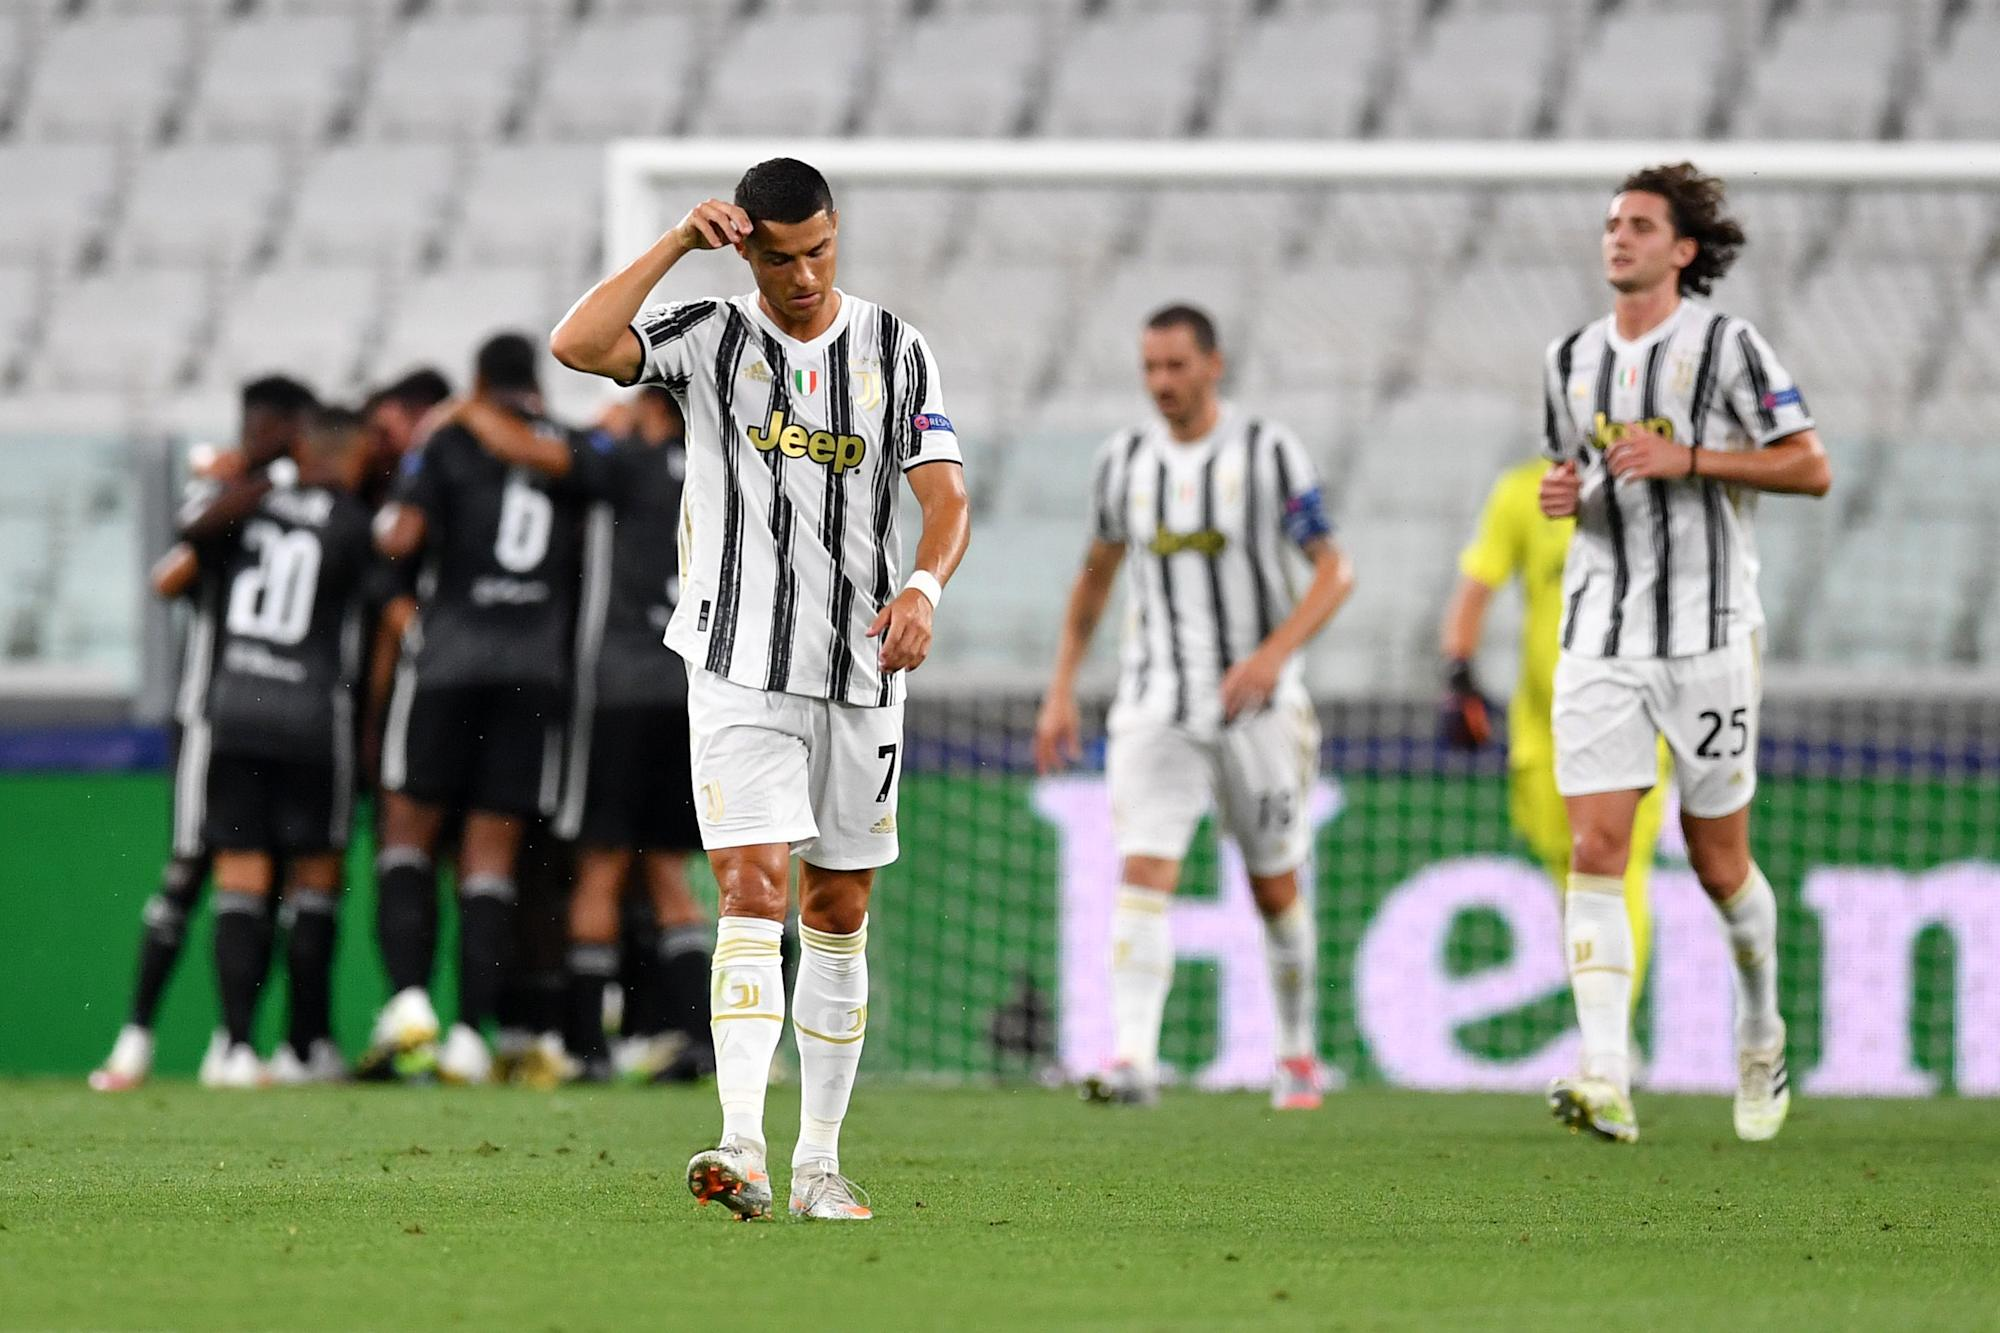 Champions League: Cristiano Ronaldo's Juventus eliminated; Man City ousts Real  Madrid (video)